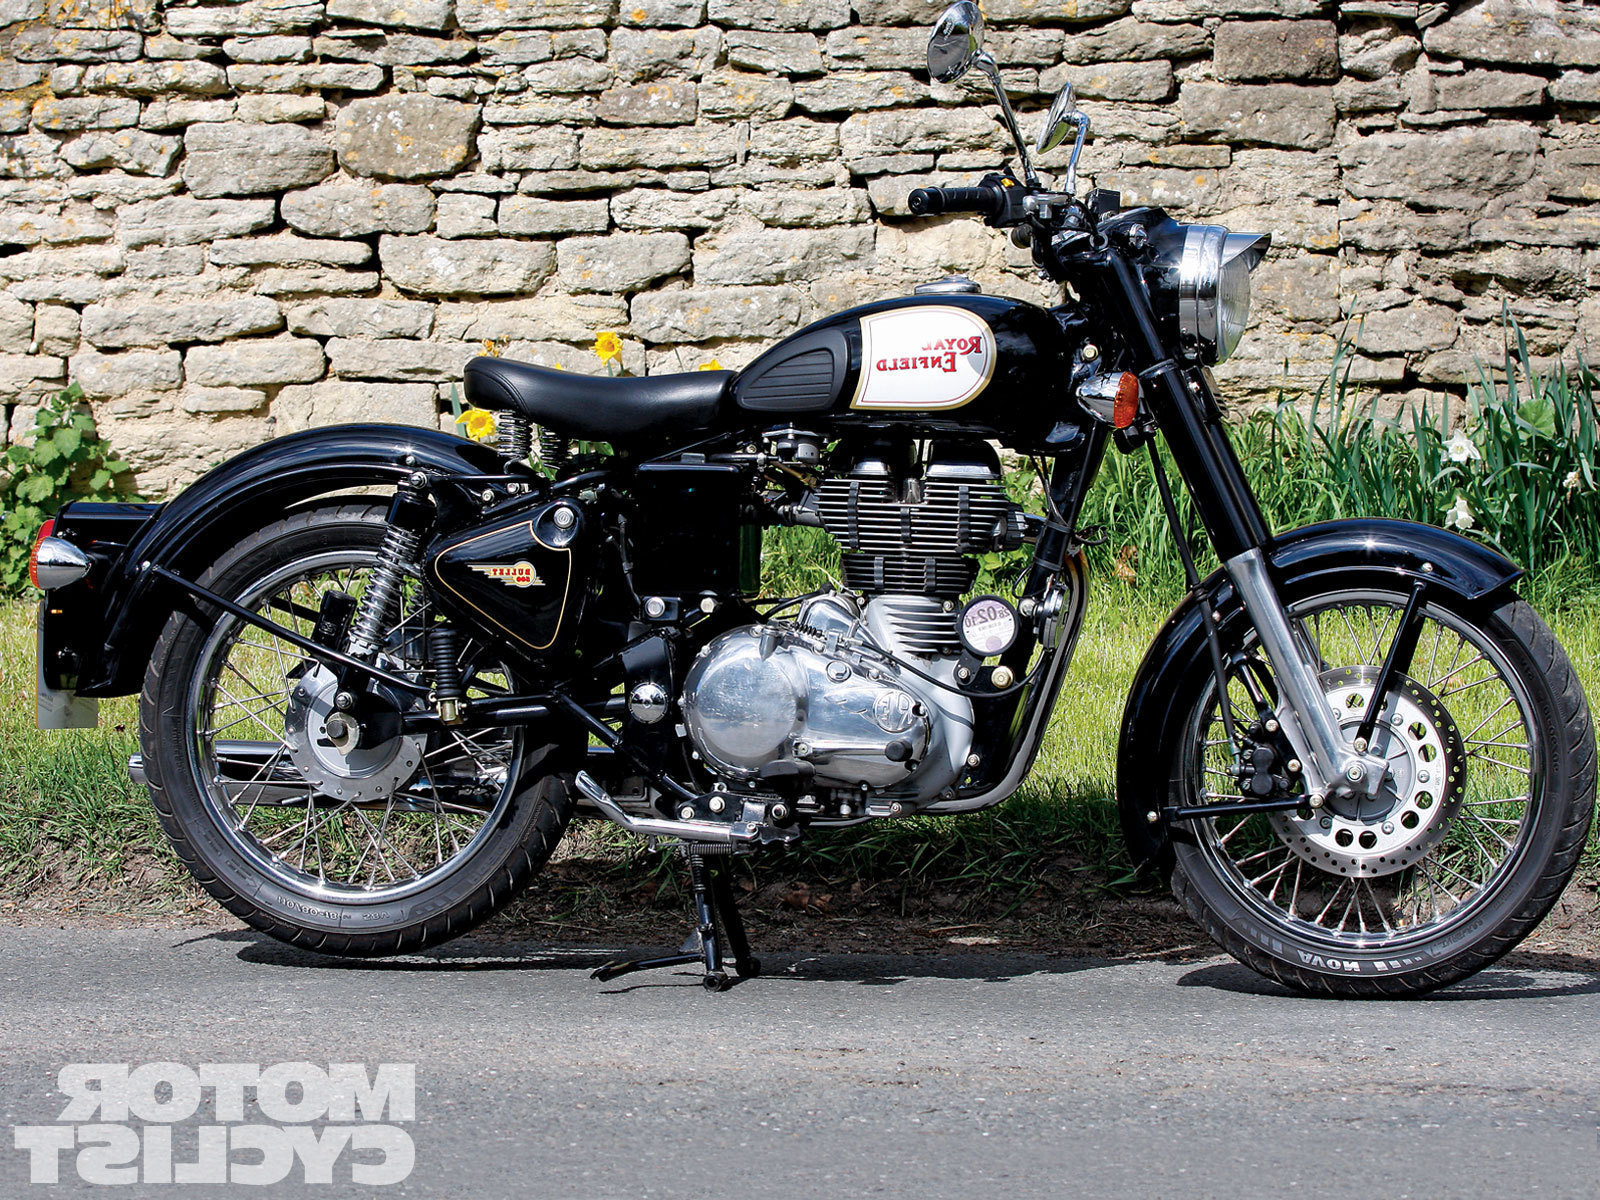 Modified Royal Enfield Classic 350 Wallpapers Hd Image Cruiser 1629402 Hd Wallpaper Backgrounds Download